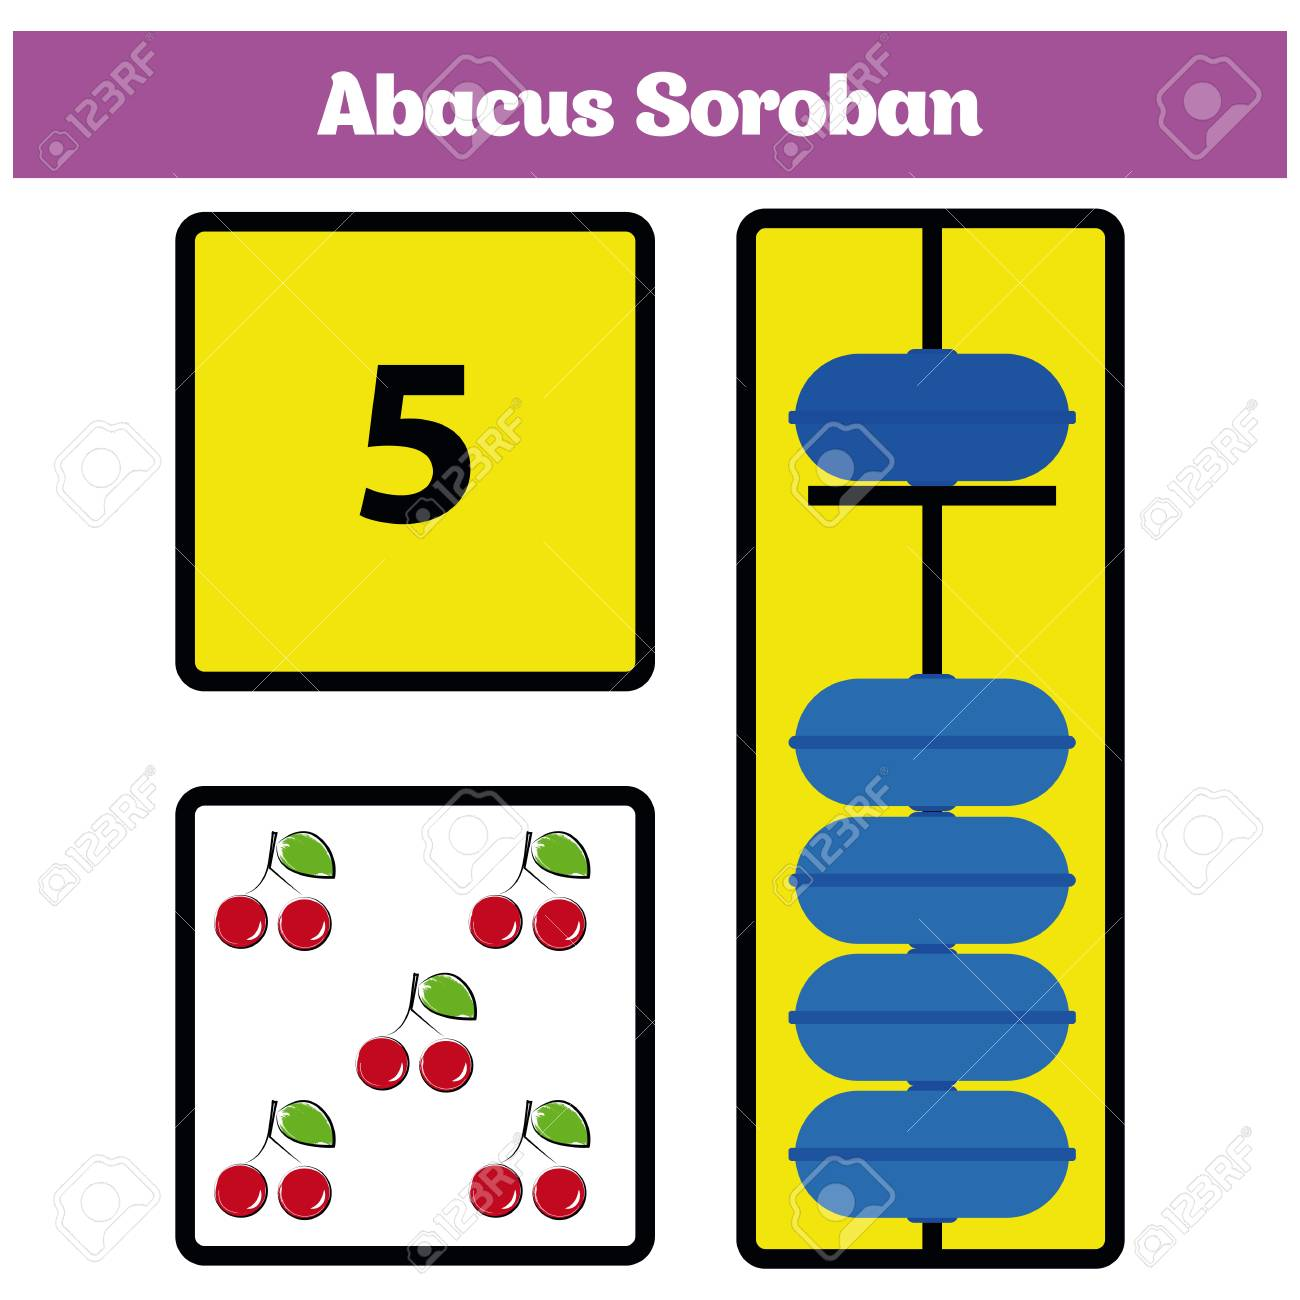 Abacus Soroban Kids Learn Numbers With Abacus Math Worksheet